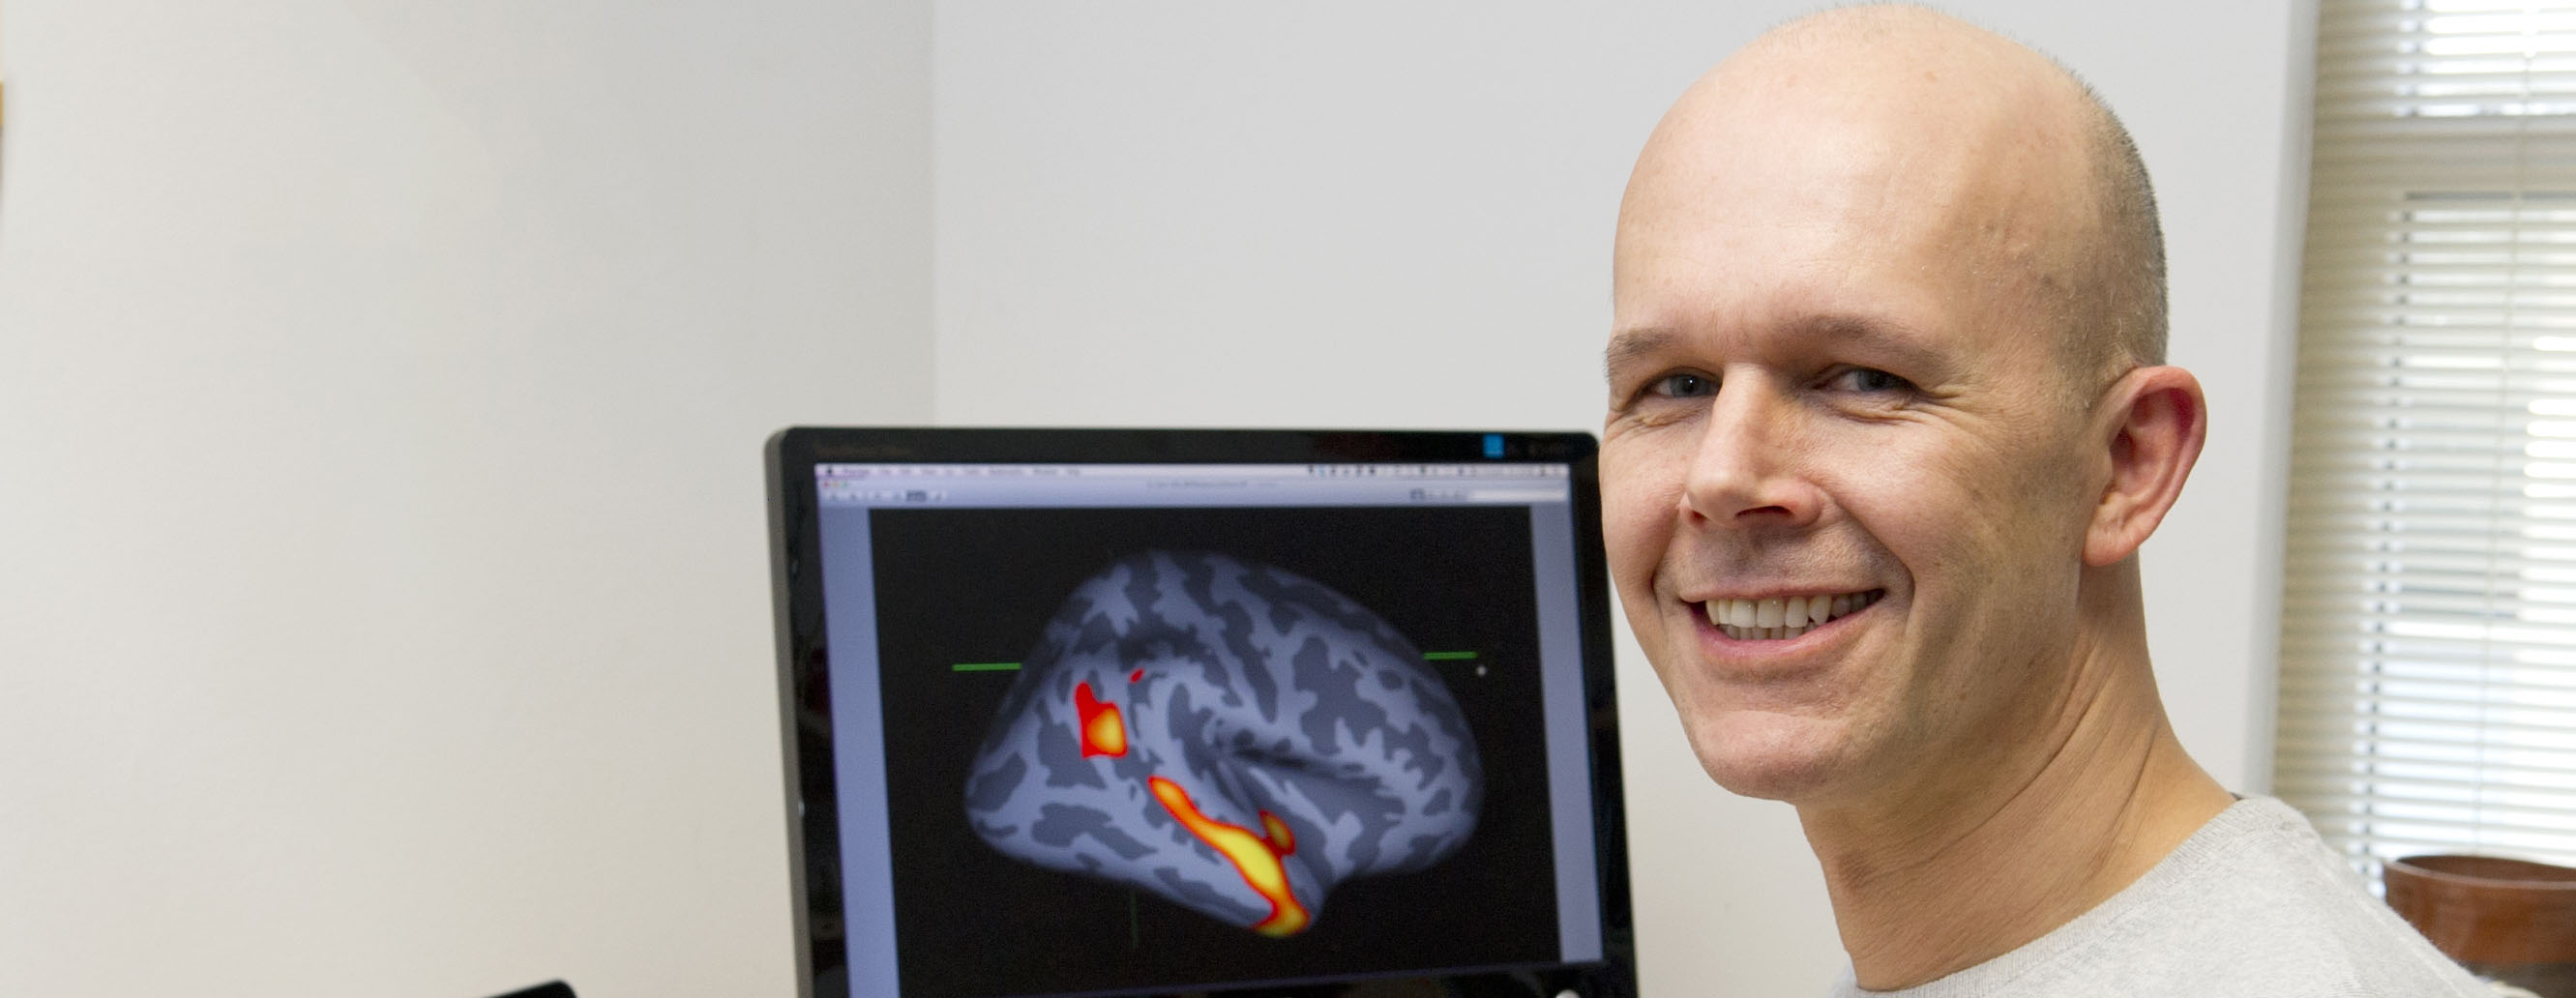 Olivier Piguet views scan of brain with dementia